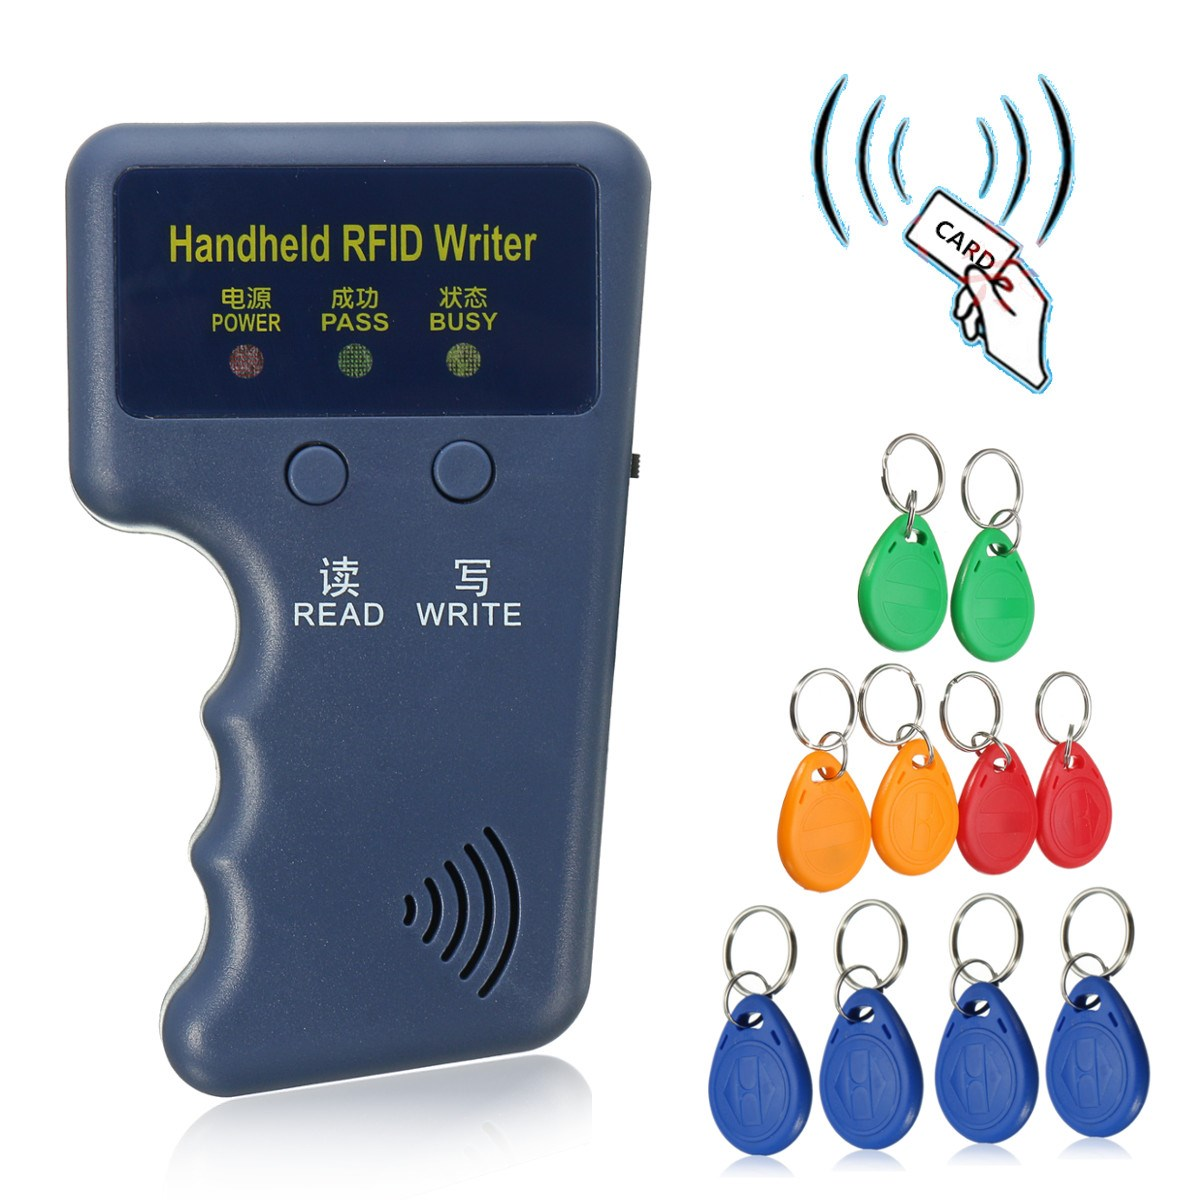 Handheld 125KHz EM4100 RFID Copier Writer Duplicator Programmer Reader + 10 Pcs EM4305 T5577 Rewritable ID Keyfobs Tags Card portable handheld 125khz rfid id card writer copier duplicator em4100 rfid copier writer duplicator programmer reader